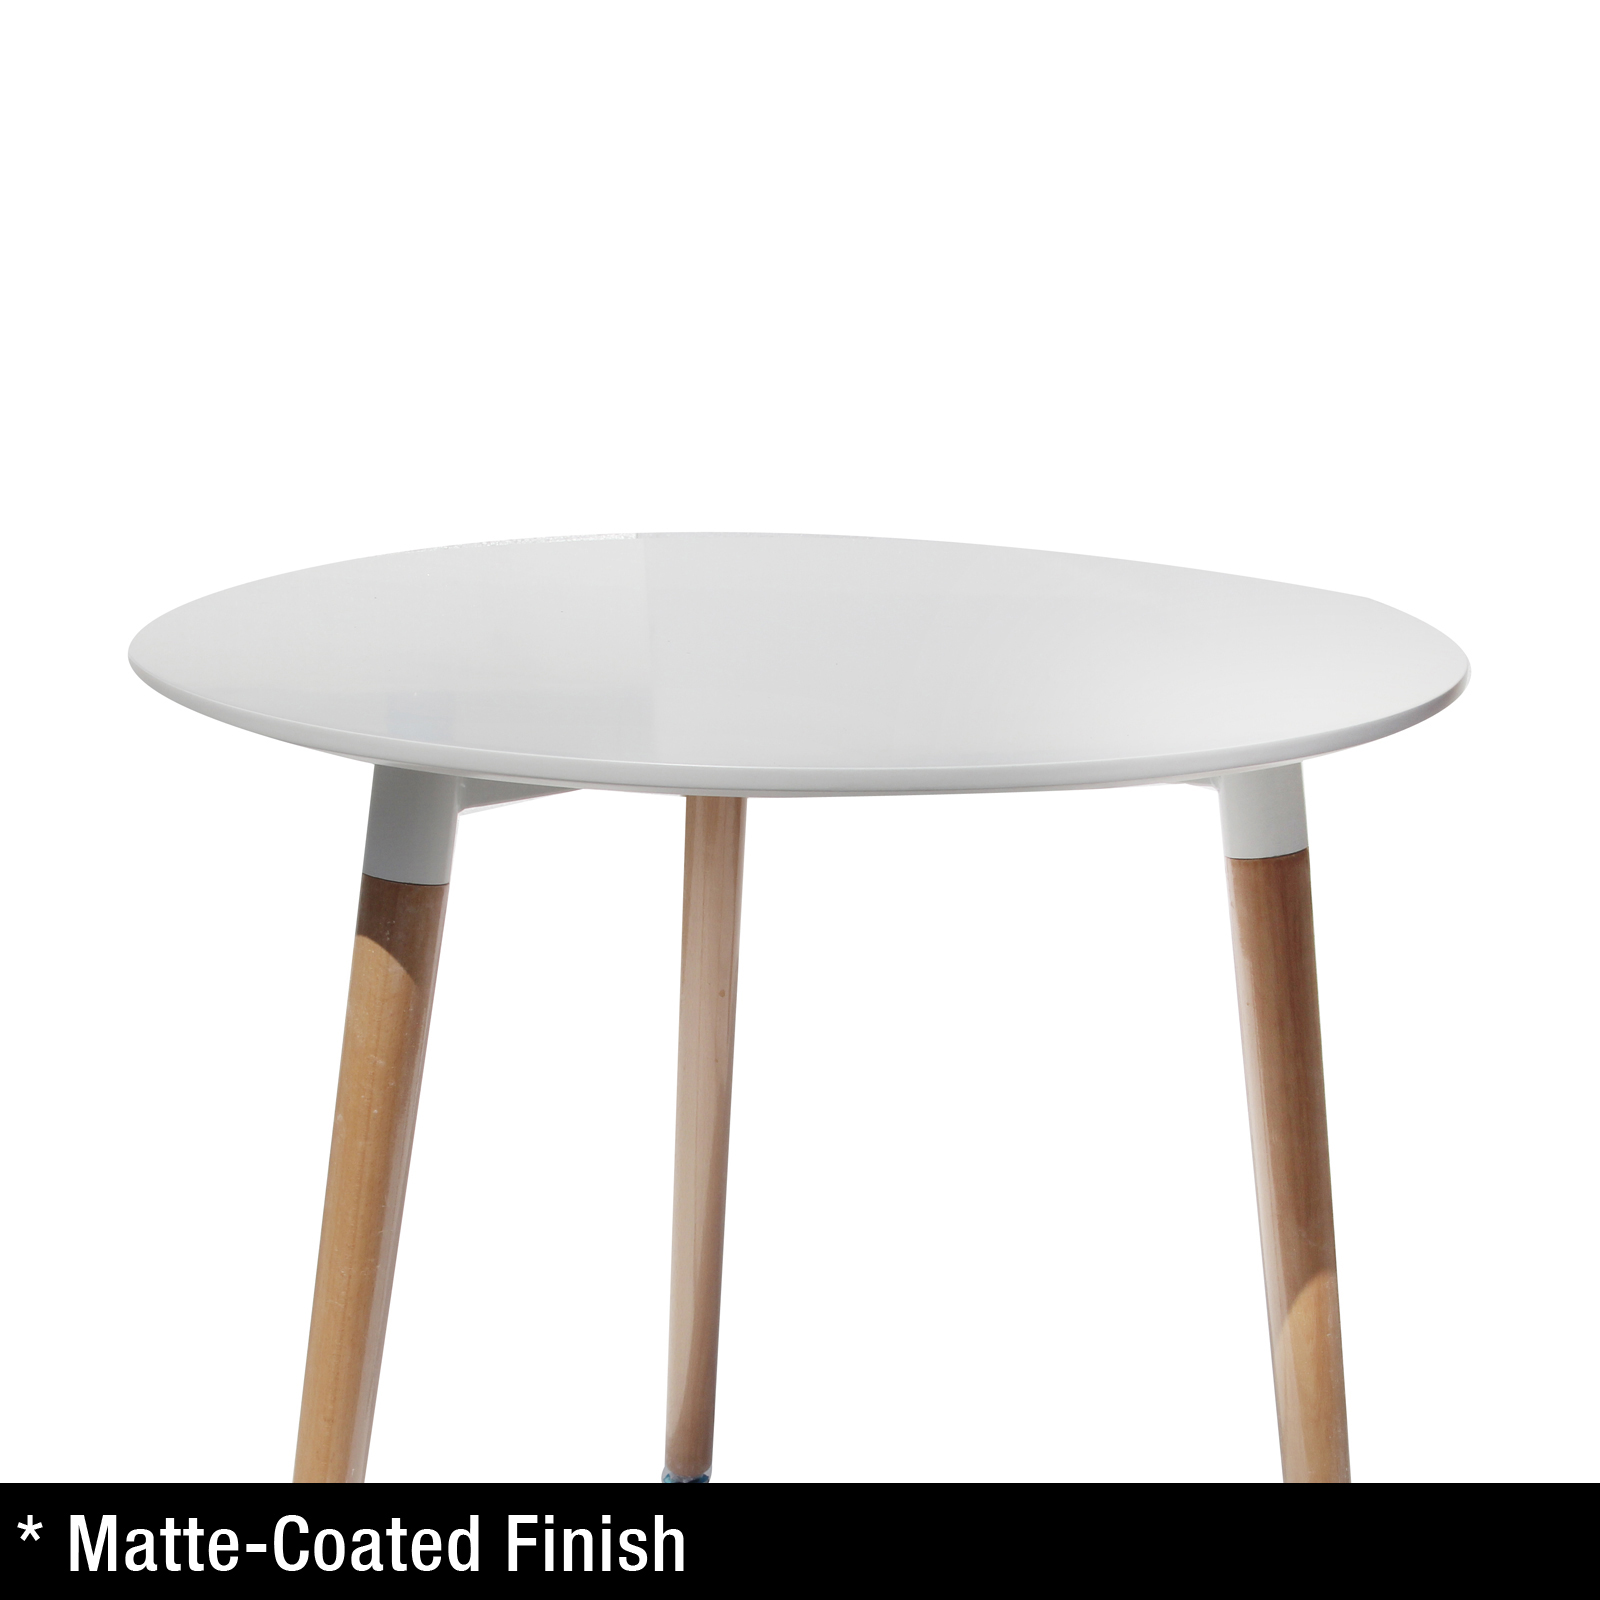 Replica Eames DSW City Dining Table White Designer Kitchen  : Round Table 04 from www.ebay.com.au size 1600 x 1600 jpeg 258kB